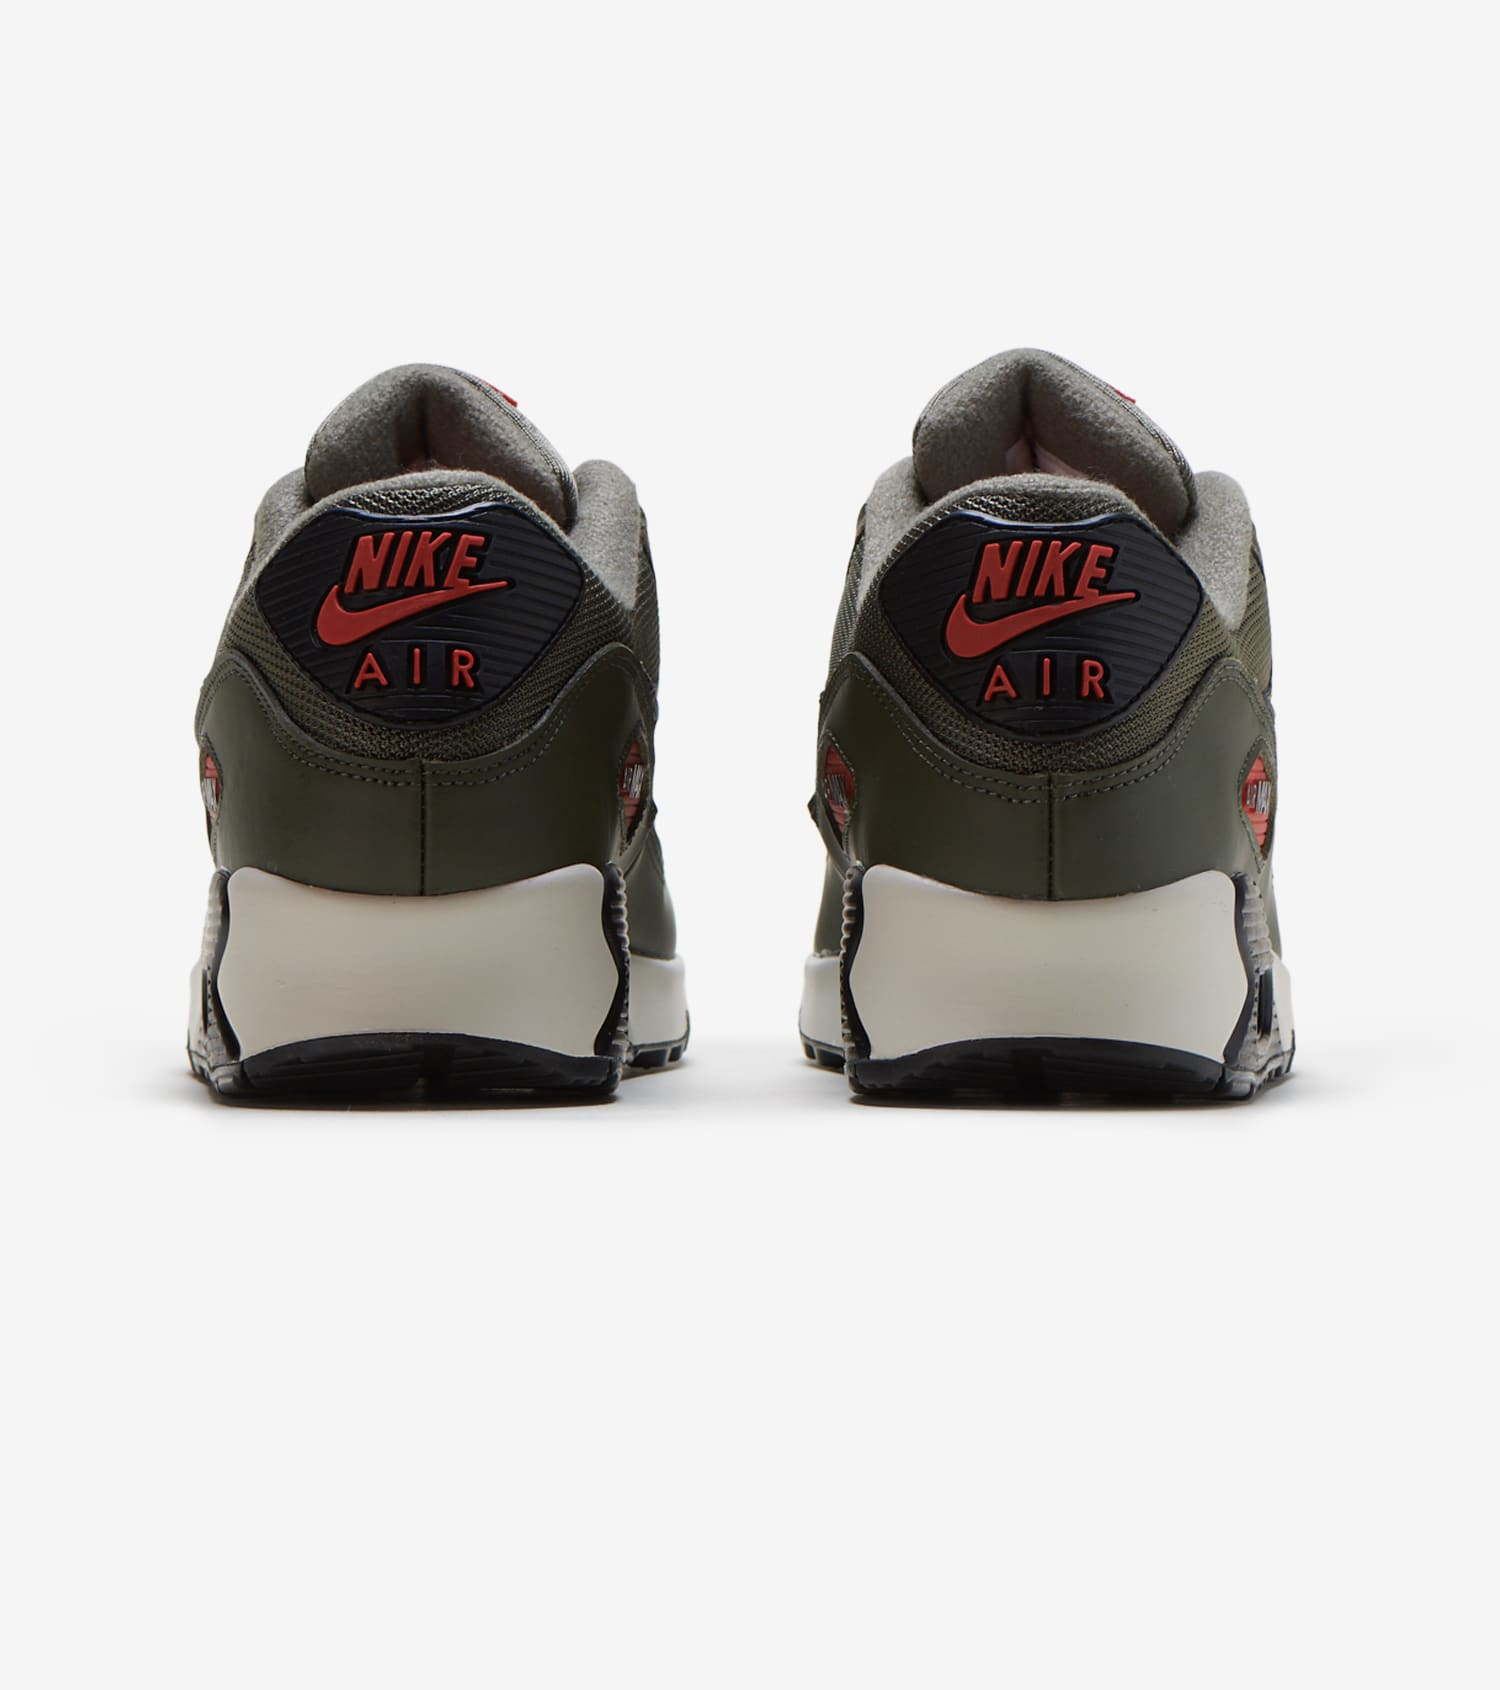 New Nike Air Max 90 Se Green Sneakers For Women On Sale